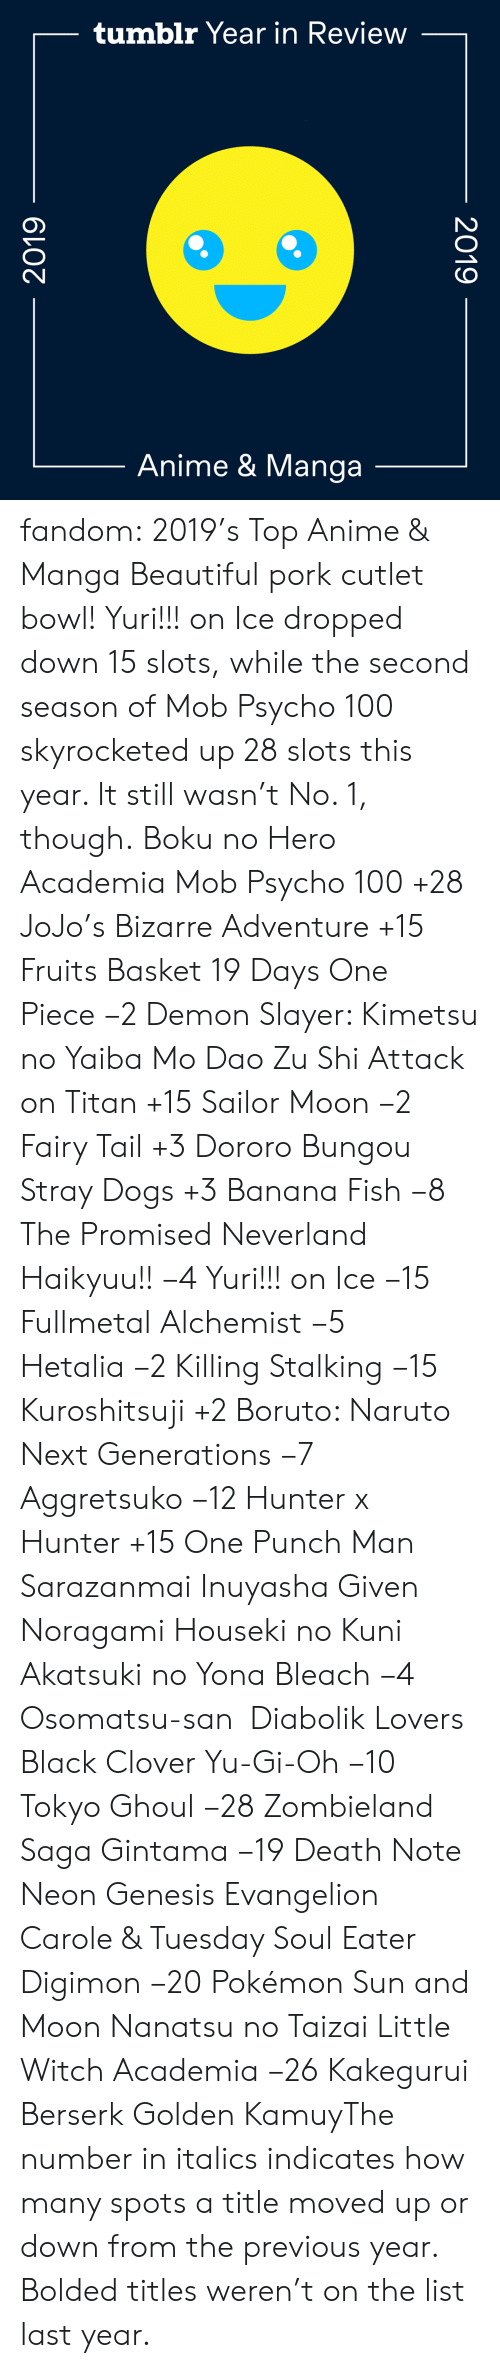 Anime, Beautiful, and Dogs: tumblr Year in Review  Anime & Manga  2019  2019 fandom:  2019's Top Anime & Manga  Beautiful pork cutlet bowl! Yuri!!! on Ice dropped down 15 slots, while the second season of Mob Psycho 100 skyrocketed up 28 slots this year. It still wasn't No. 1, though.  Boku no Hero Academia  Mob Psycho 100 +28  JoJo's Bizarre Adventure +15  Fruits Basket  19 Days  One Piece −2  Demon Slayer: Kimetsu no Yaiba  Mo Dao Zu Shi  Attack on Titan +15  Sailor Moon −2  Fairy Tail +3  Dororo  Bungou Stray Dogs +3  Banana Fish −8  The Promised Neverland  Haikyuu!! −4  Yuri!!! on Ice −15  Fullmetal Alchemist −5  Hetalia −2  Killing Stalking −15  Kuroshitsuji +2  Boruto: Naruto Next Generations −7  Aggretsuko −12  Hunter x Hunter +15  One Punch Man  Sarazanmai  Inuyasha  Given  Noragami  Houseki no Kuni  Akatsuki no Yona  Bleach −4  Osomatsu-san   Diabolik Lovers  Black Clover  Yu-Gi-Oh −10  Tokyo Ghoul −28  Zombieland Saga  Gintama −19  Death Note  Neon Genesis Evangelion  Carole & Tuesday  Soul Eater  Digimon −20  Pokémon Sun and Moon  Nanatsu no Taizai  Little Witch Academia −26  Kakegurui  Berserk Golden KamuyThe number in italics indicates how many spots a title moved up or down from the previous year. Bolded titles weren't on the list last year.